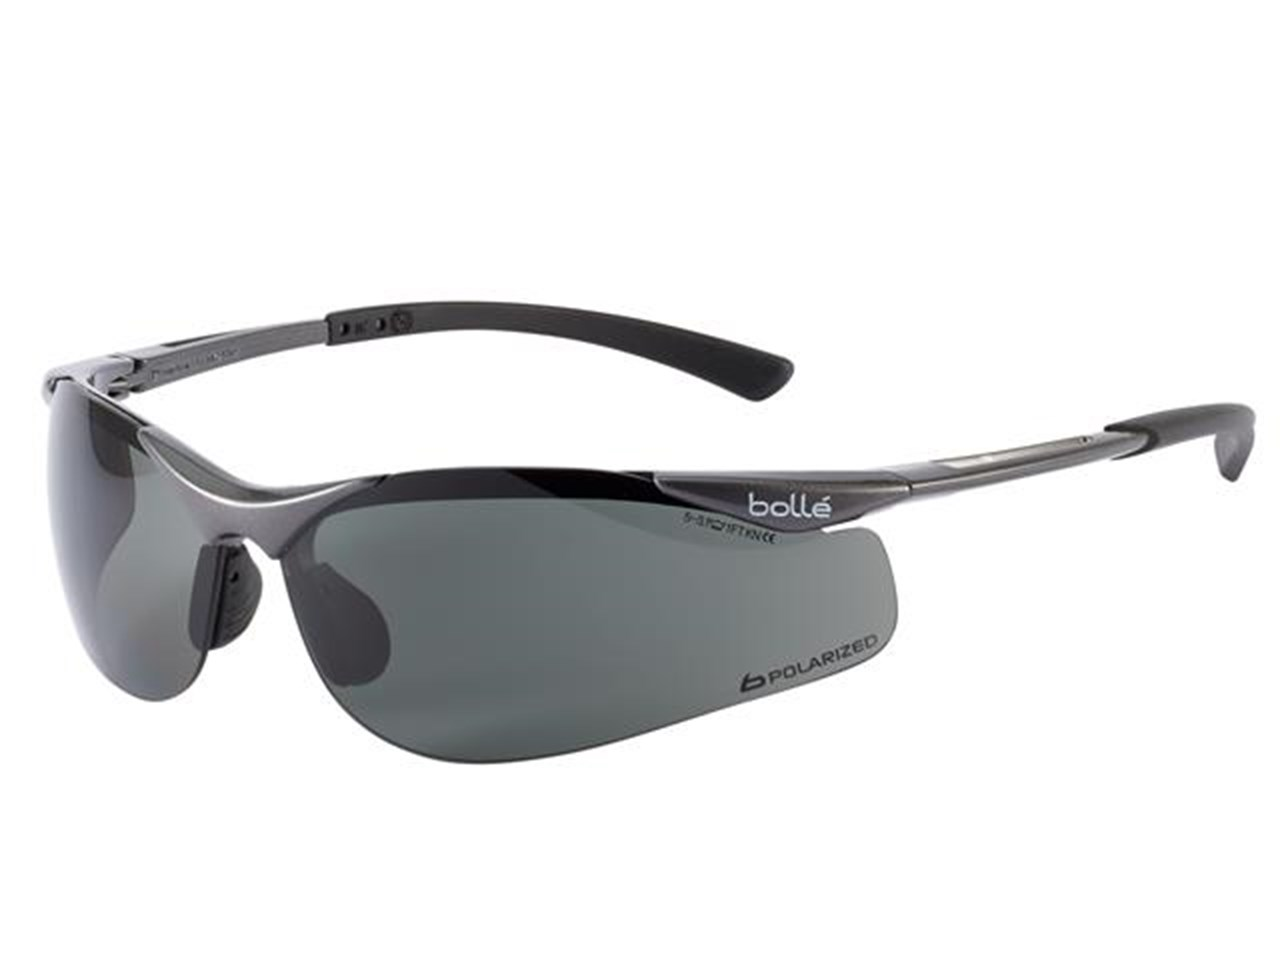 40be021965c5 Bolle CONTPOL Contour Safety Glasses - Polarised